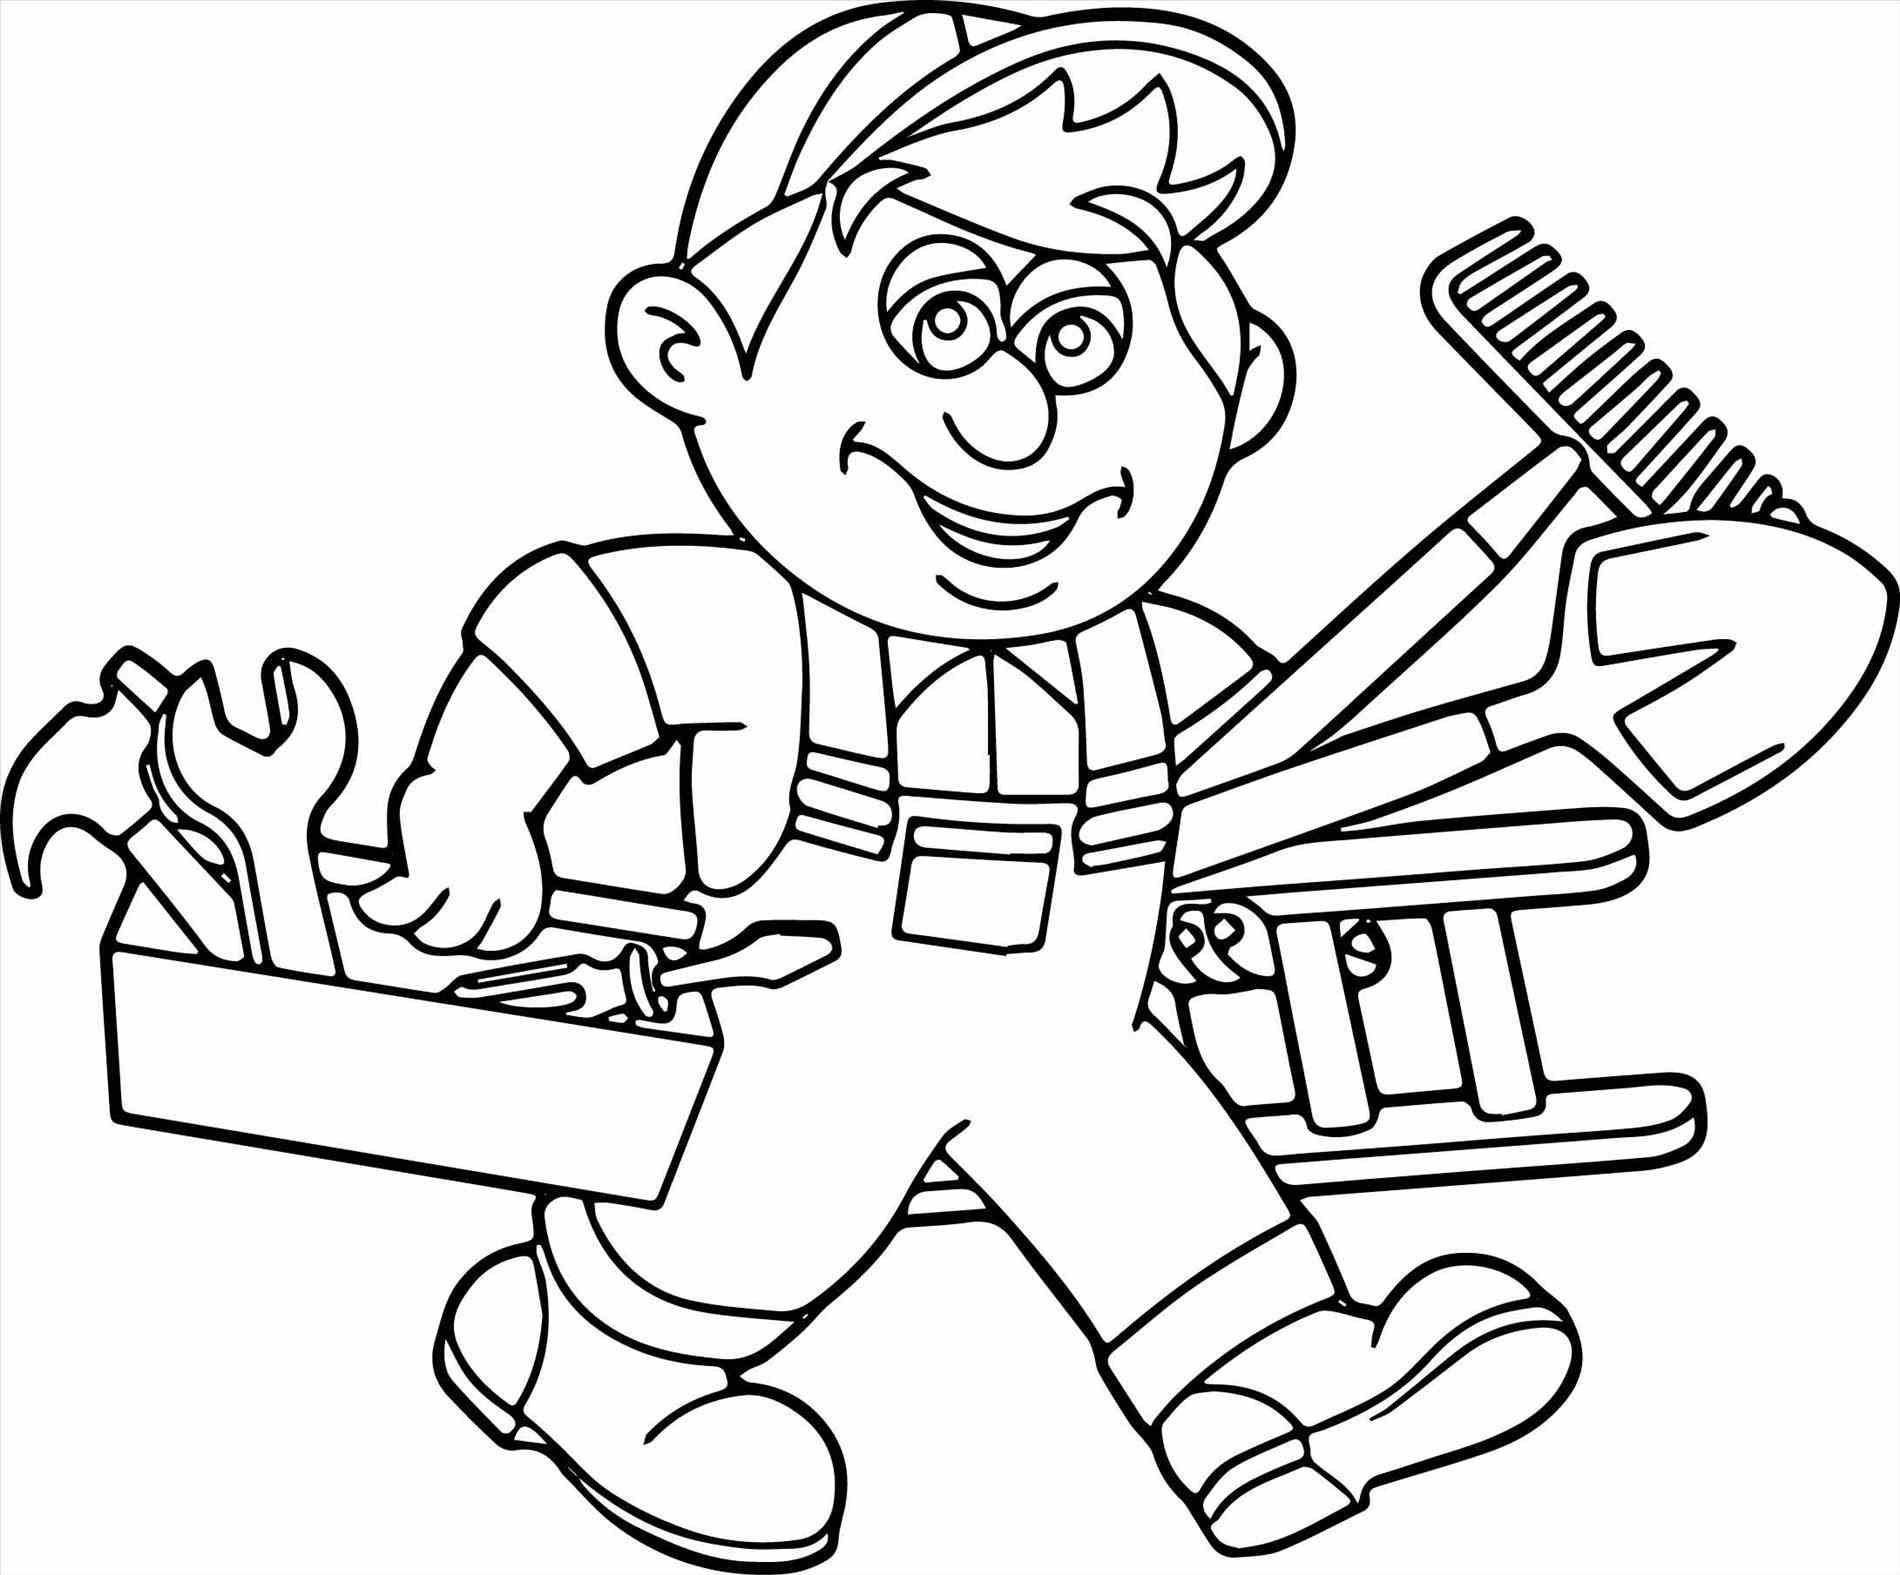 1900x1575 Toolbox Coloring Page Web Coloring Pages